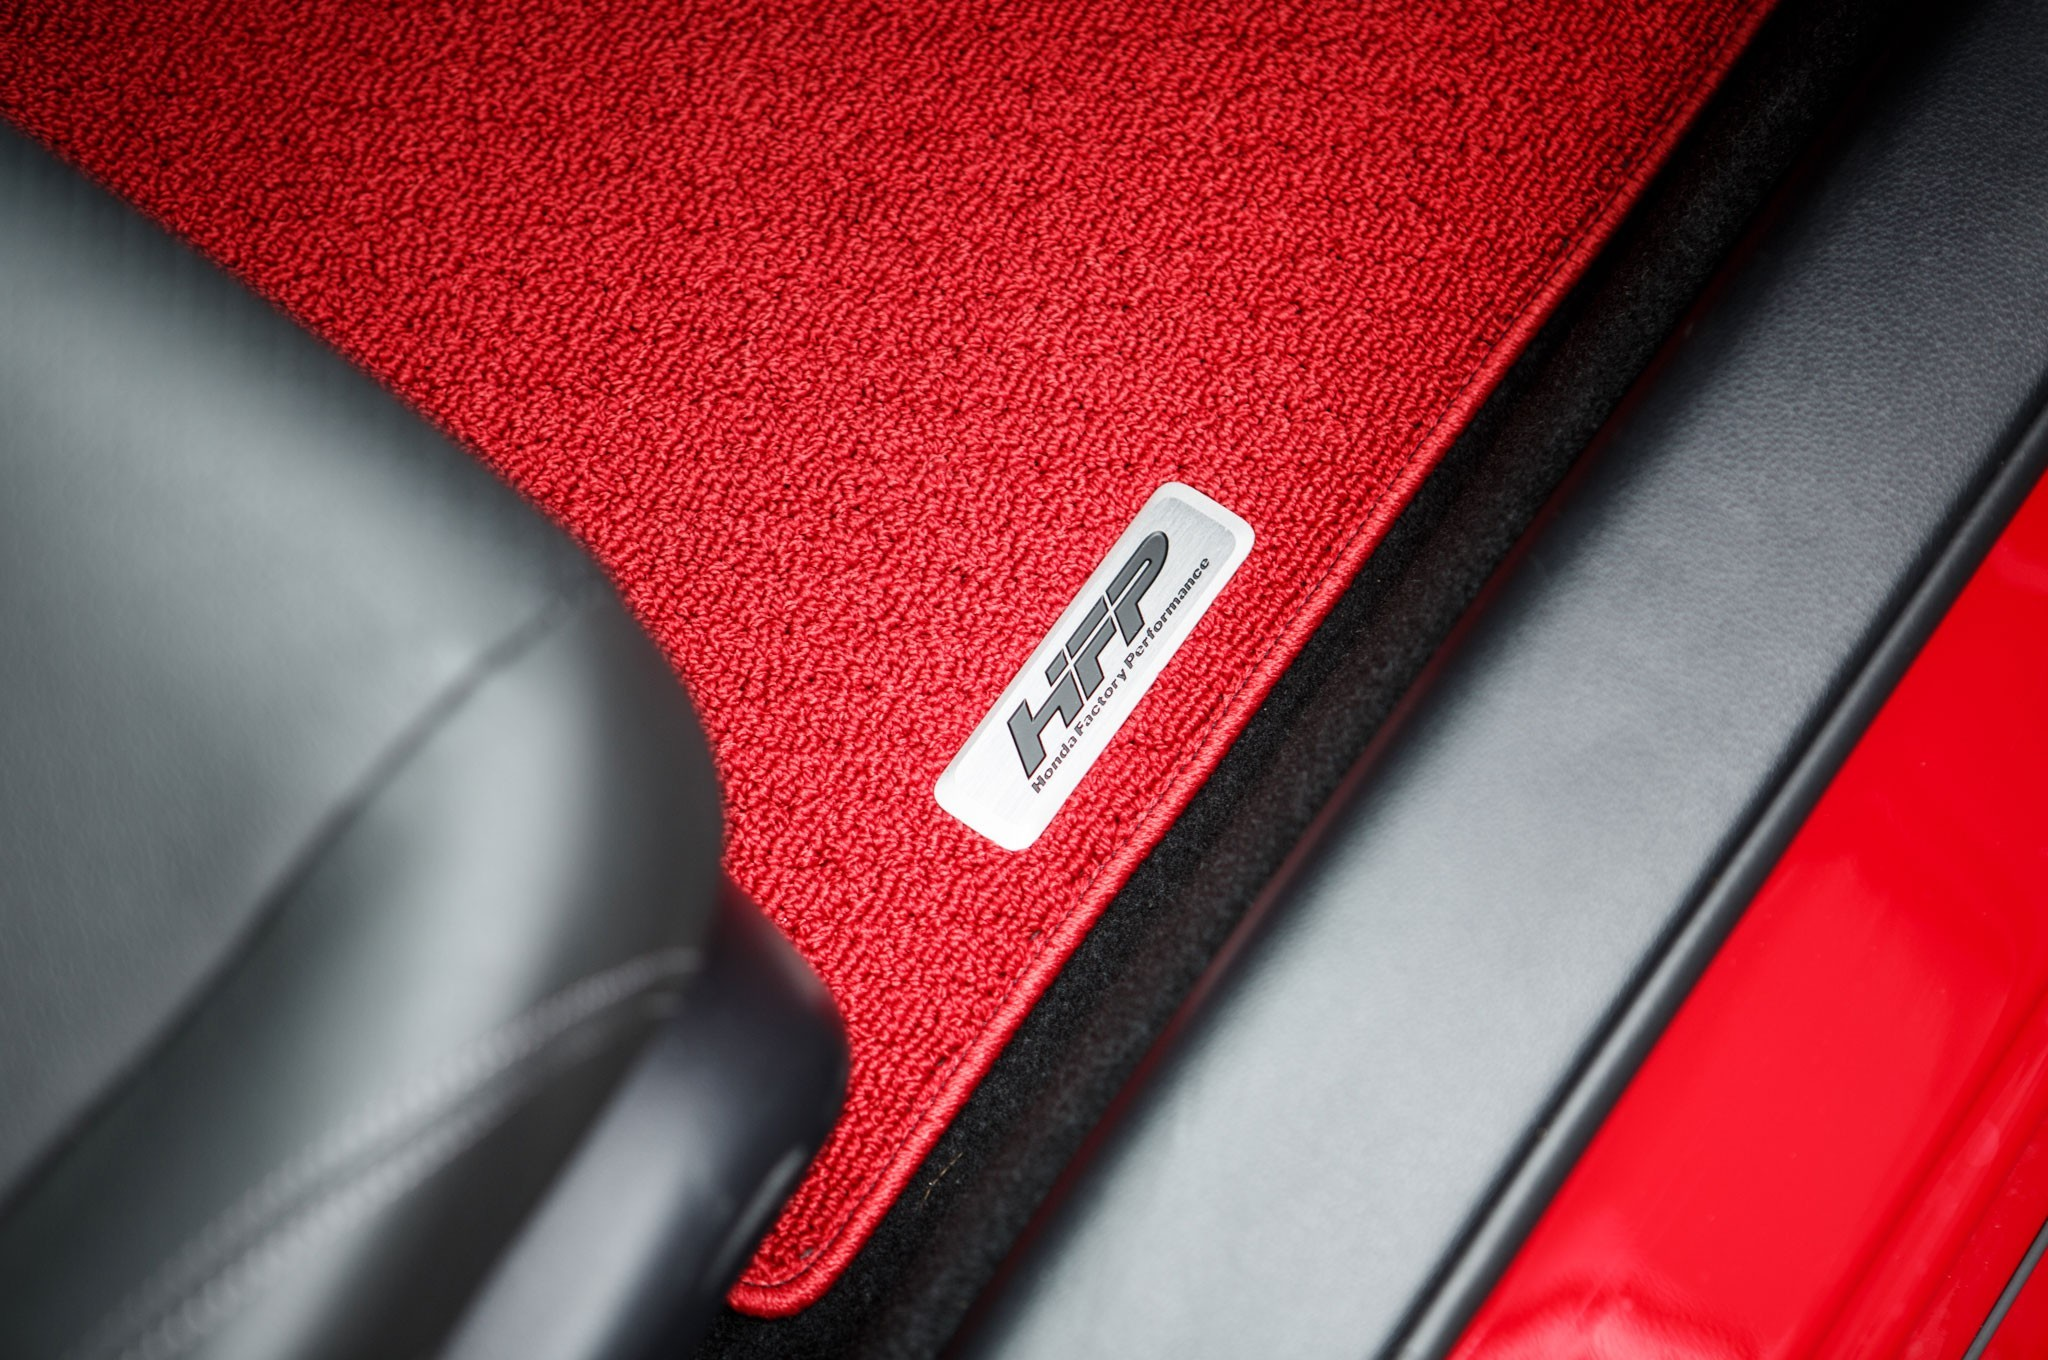 Hfp red floor mats 2013 2017 accord coupe